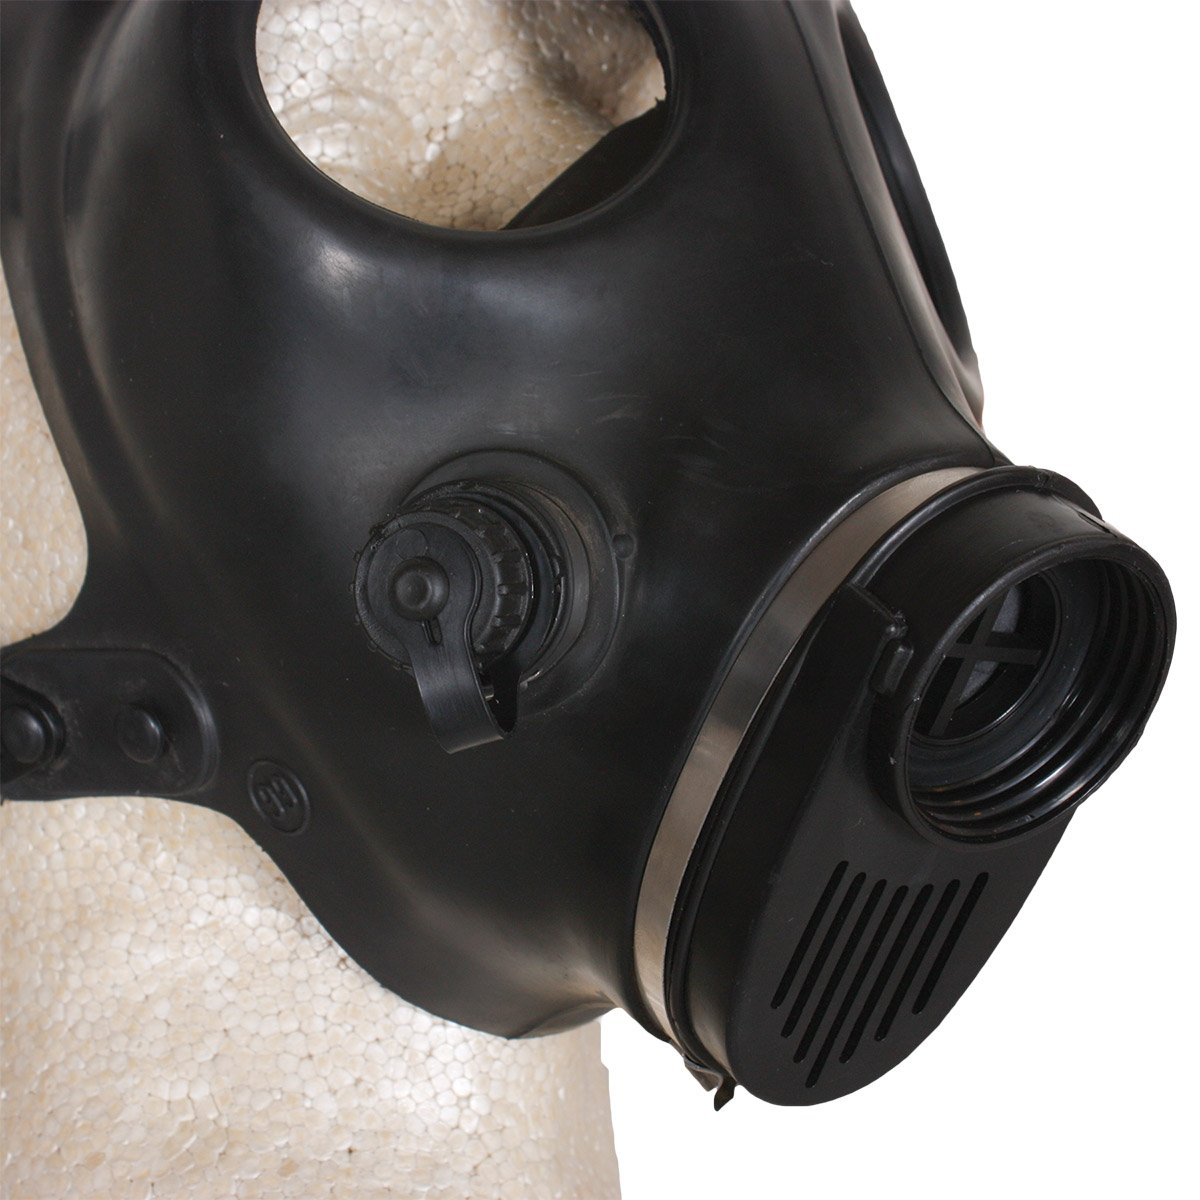 Israeli Style Rubber Respirator Mask NBC Protection For Industrial Use, Chemical Handling, Painting, Welding, Prepping, Emergency Preparedness